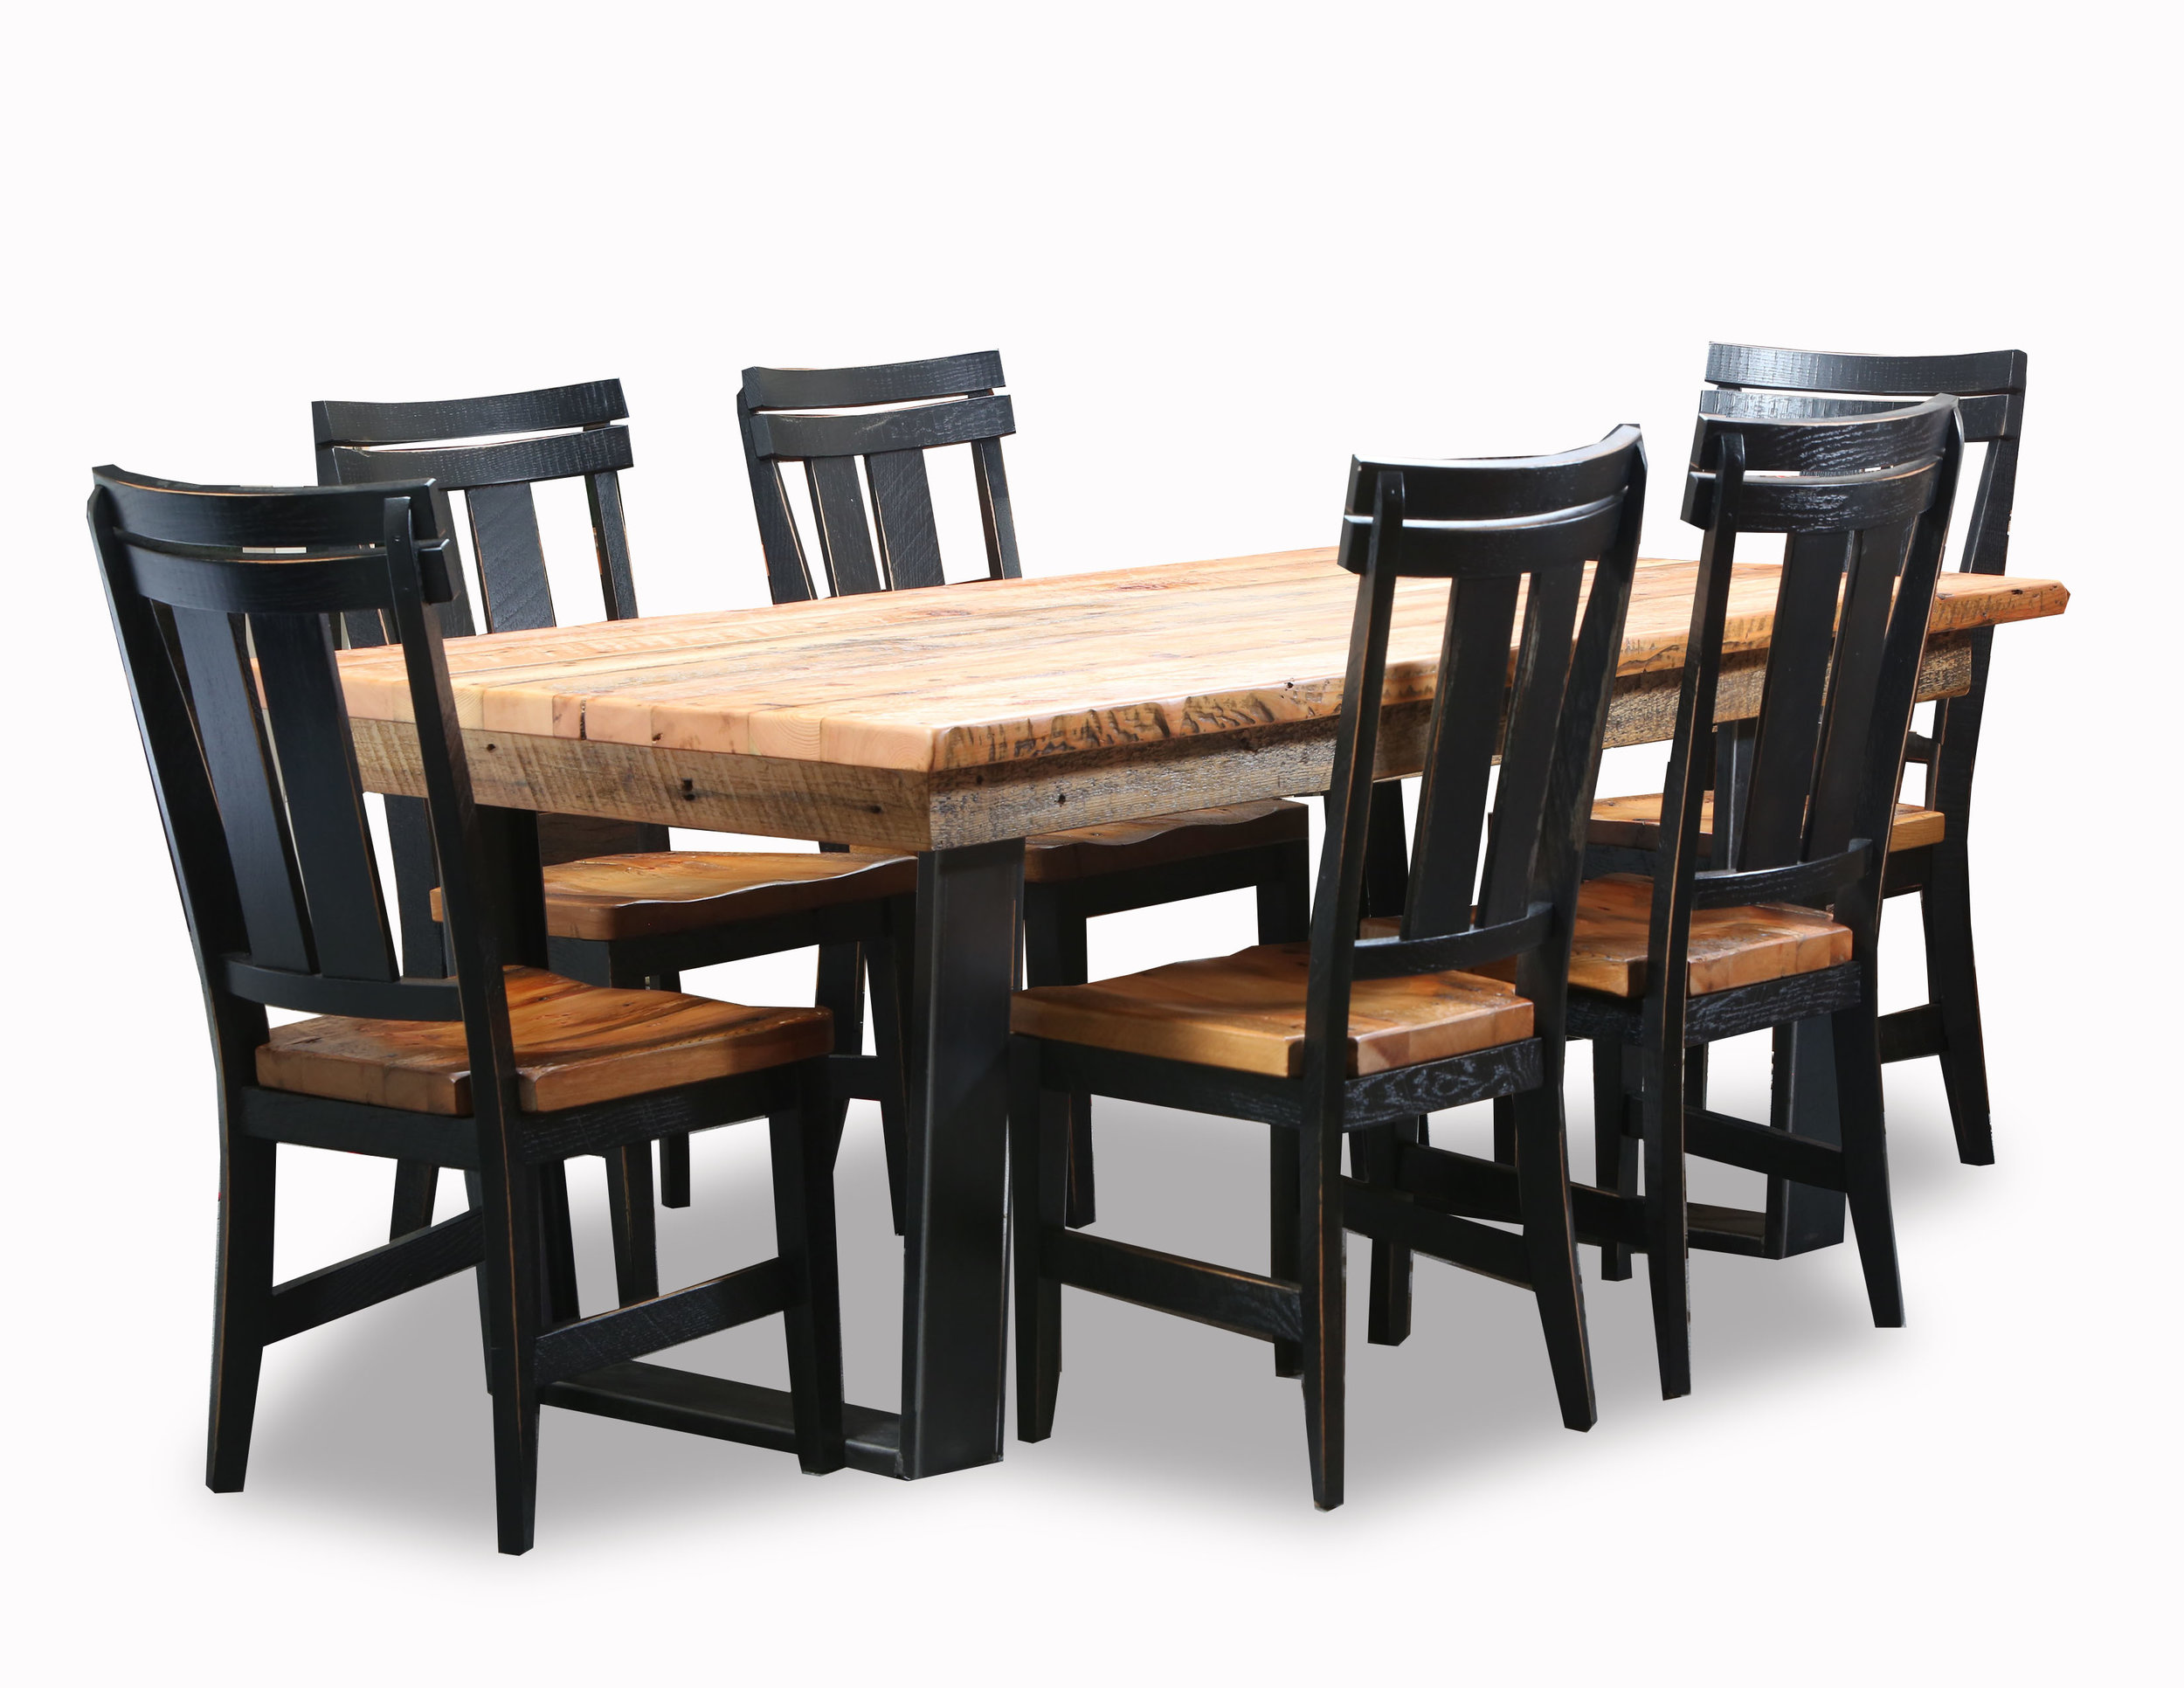 1720-1724 Granary Dining Table with Industrial Steel Base and Farmhouse Dining Chairs.jpg